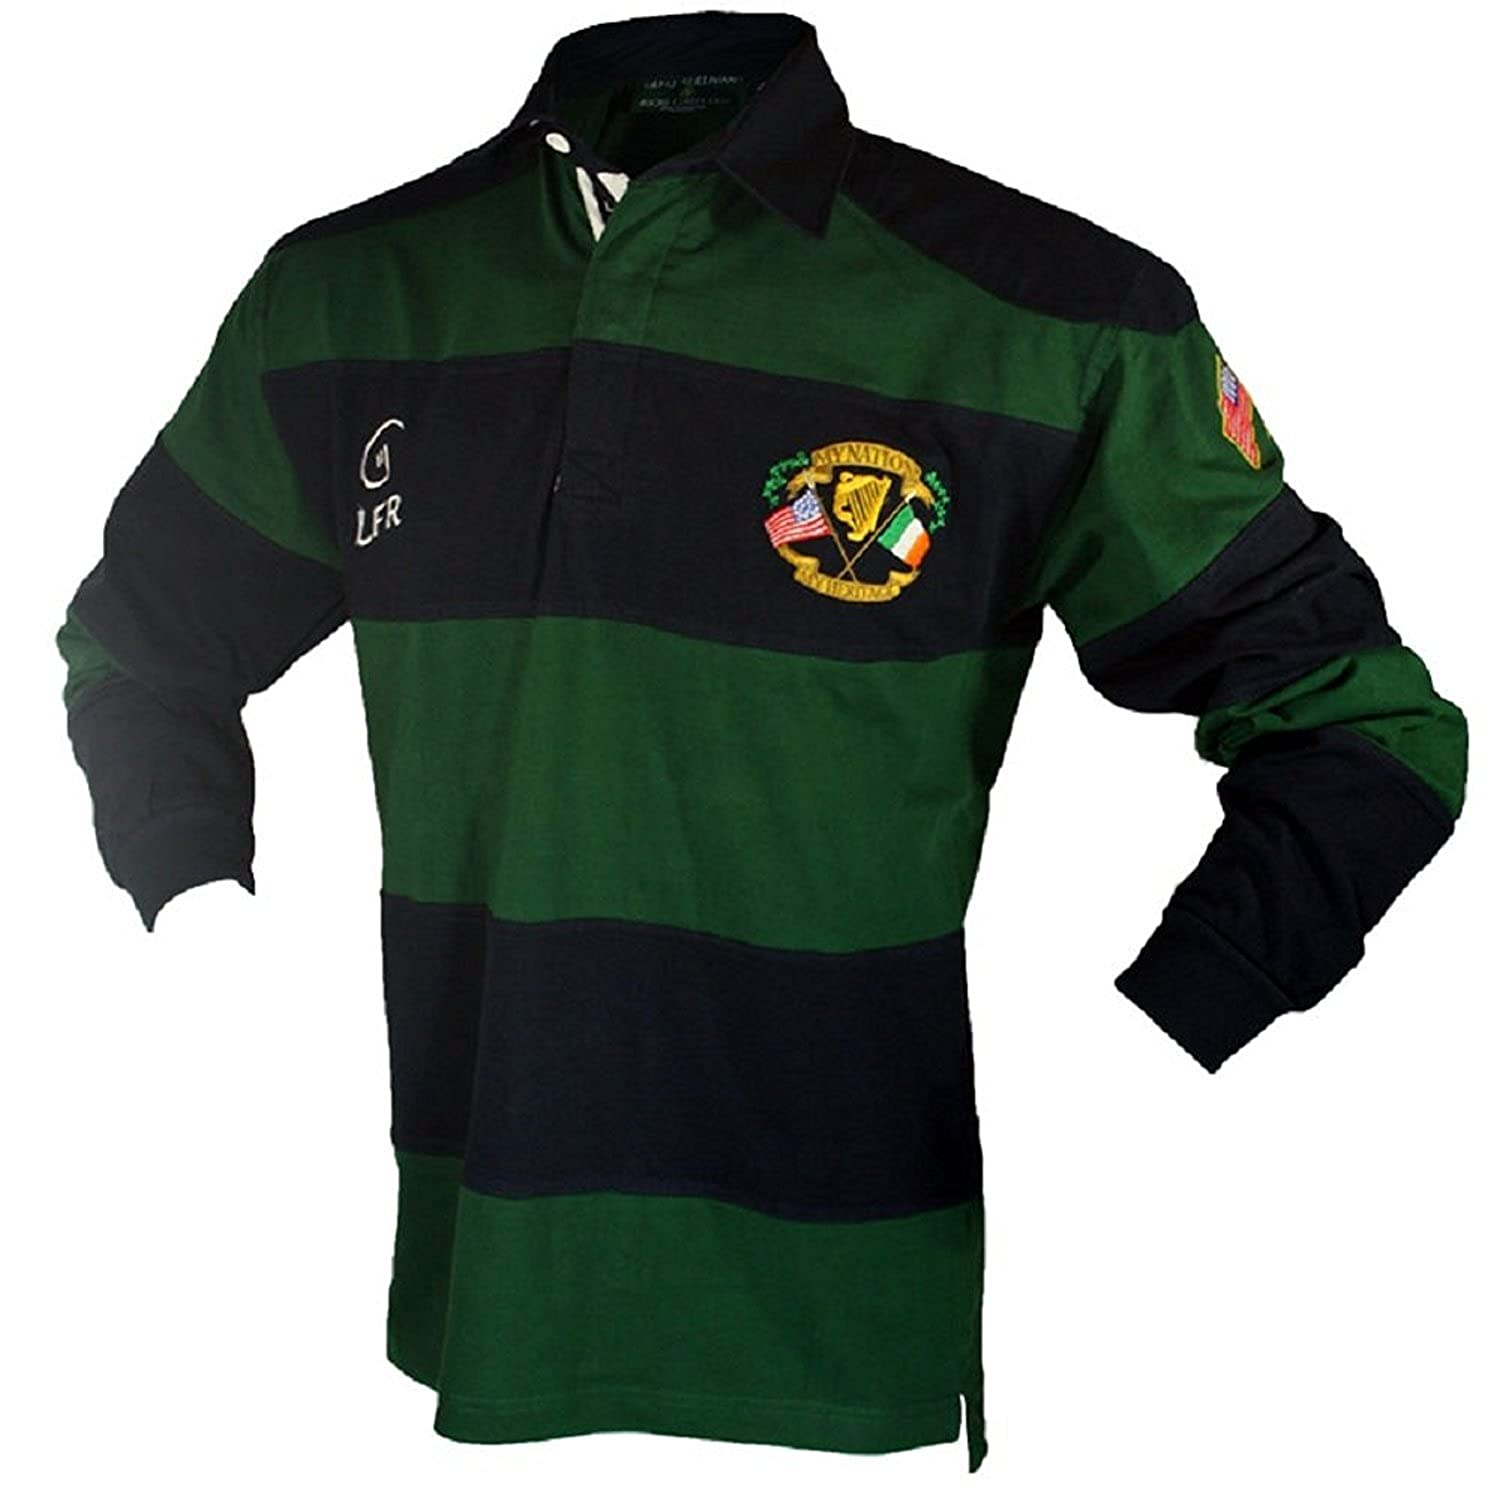 5dc49c29715dd Amazon.com  Silky Sullivan Collection Men s Long Sleeve Ireland Rugby  Jersey (XXL)  Clothing